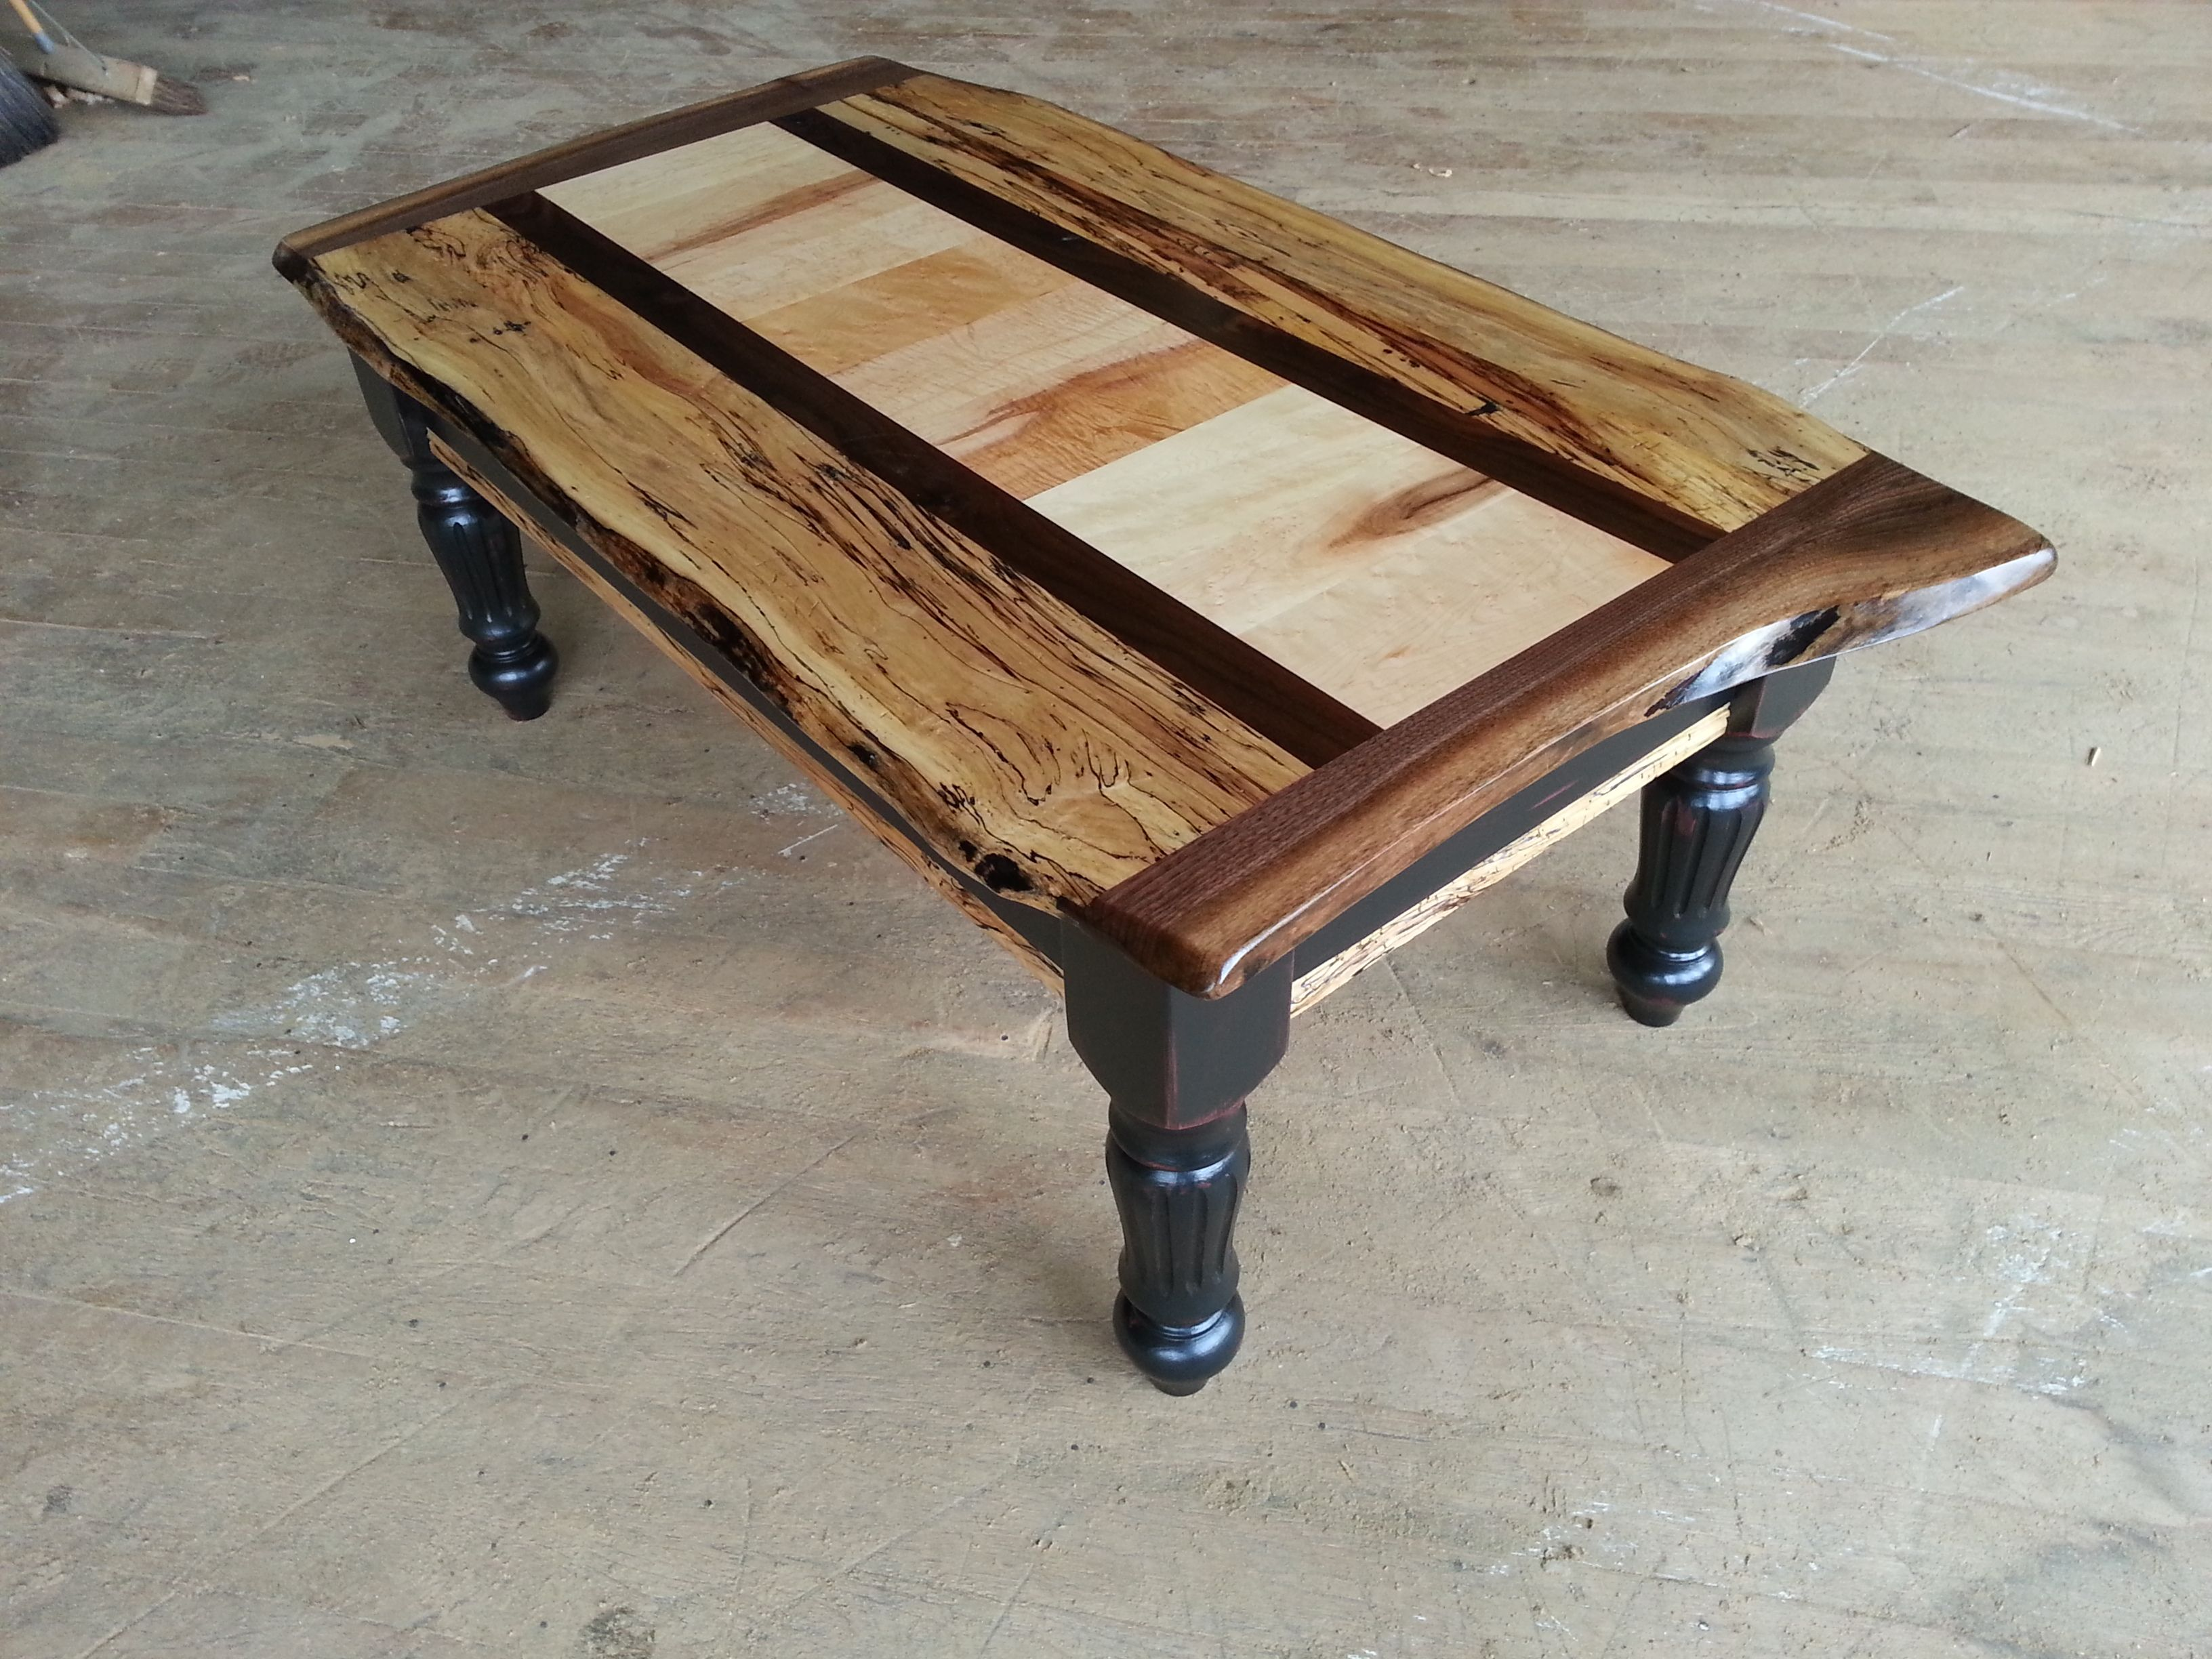 coffee table black over red base with spalted maple and black